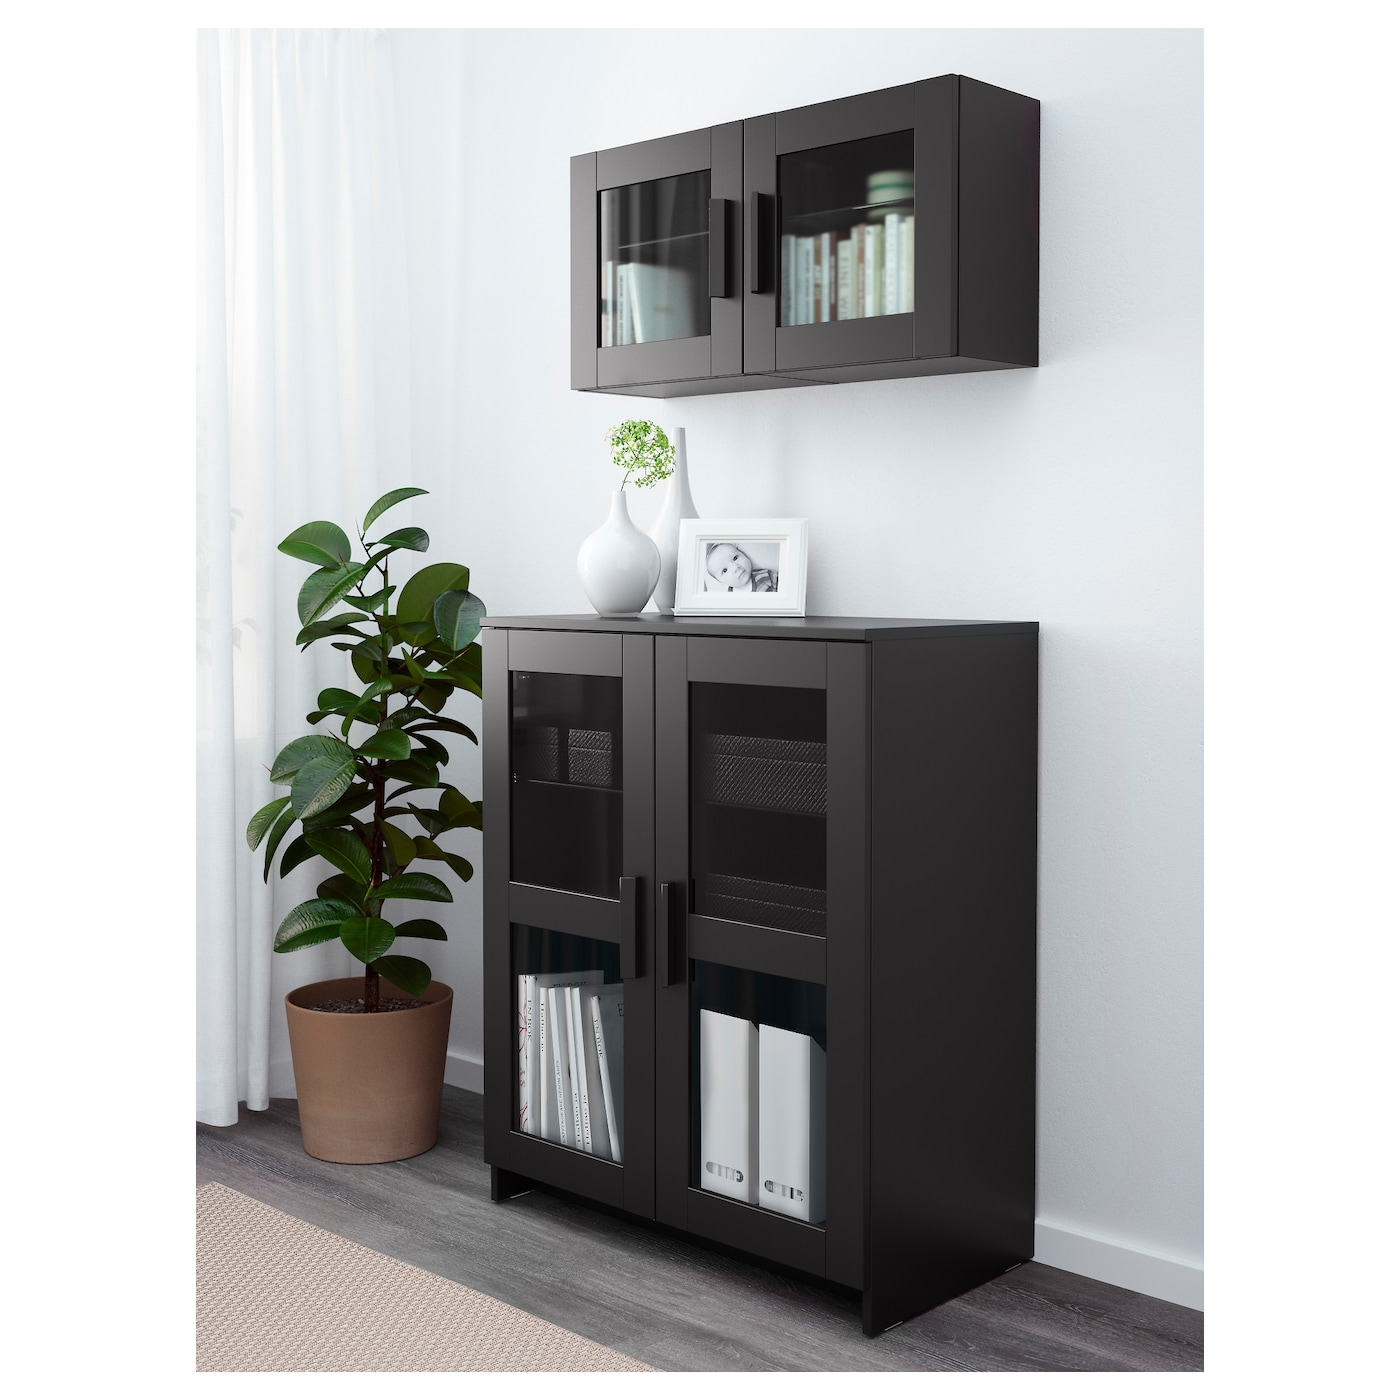 brimnes cabinet with doors glass black 78x95 cm ikea. Black Bedroom Furniture Sets. Home Design Ideas